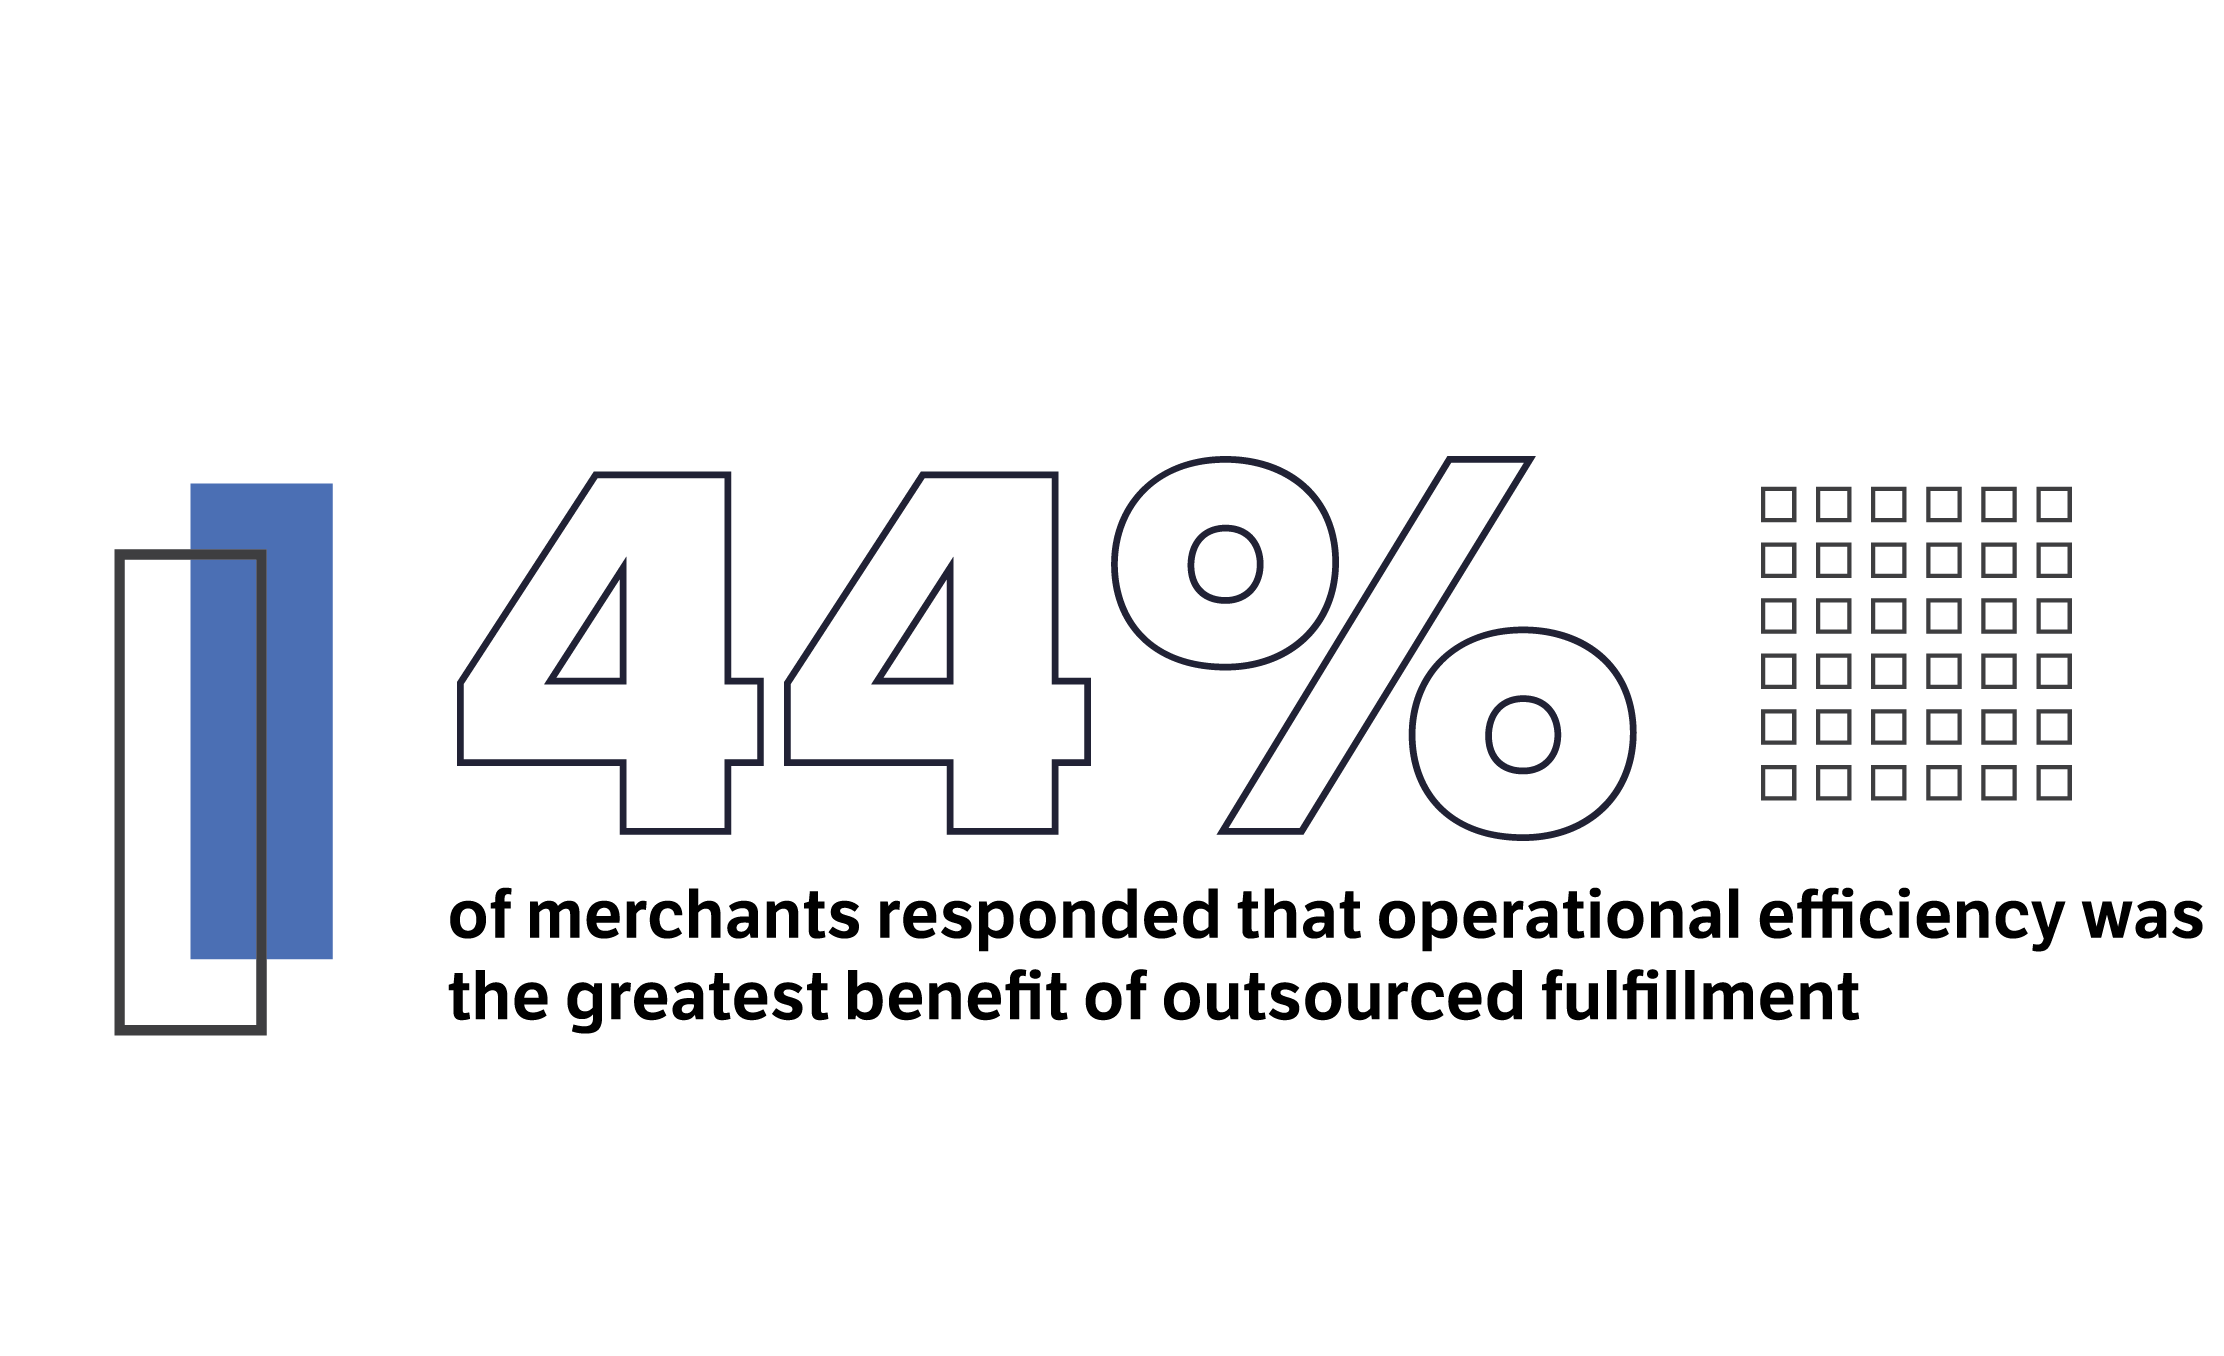 44% of merchants cited operational efficiency as the greatest benefit to outsourced order fulfillment